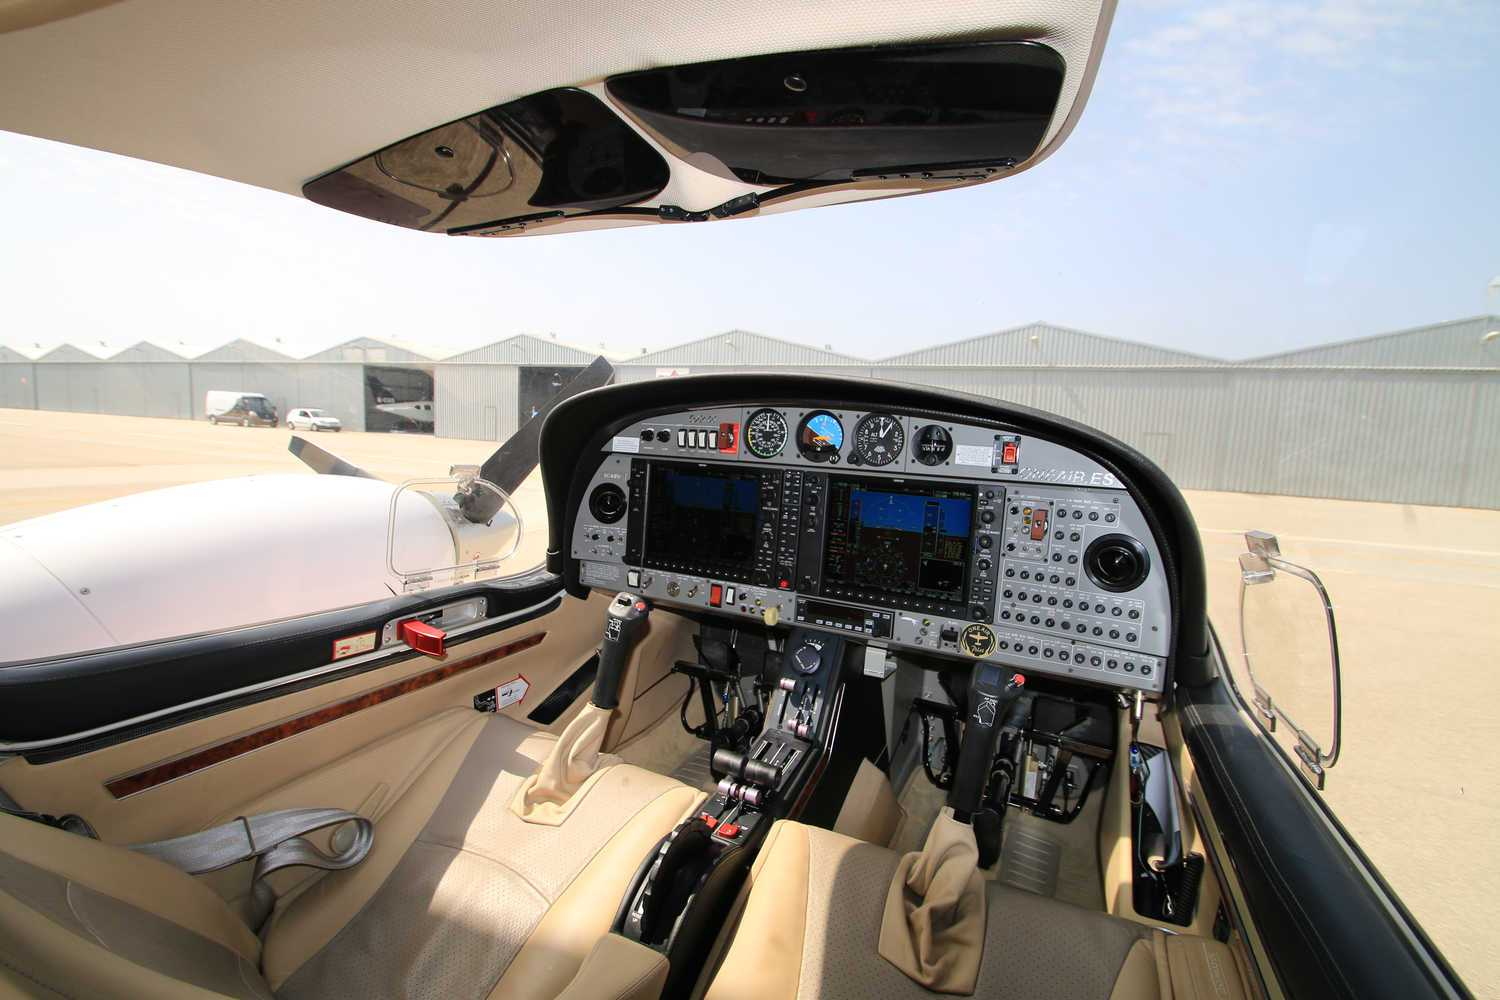 interior view of a diamond da42 aircraft owned by one air at velez aerodrome